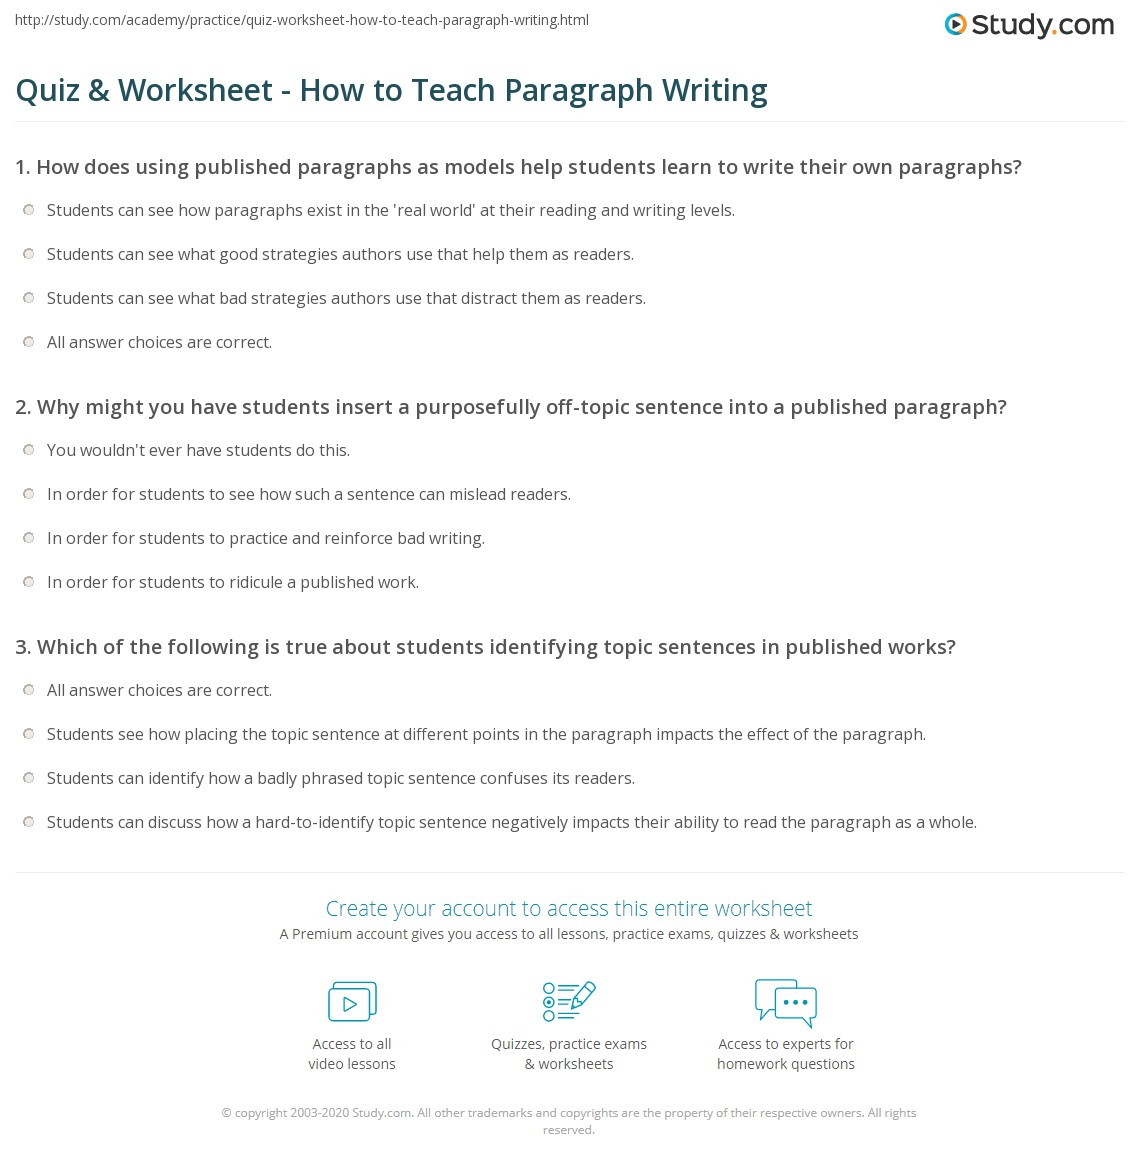 Teaching Paragraph Writing Worksheets Quiz & Worksheet How to Teach Paragraph Writing